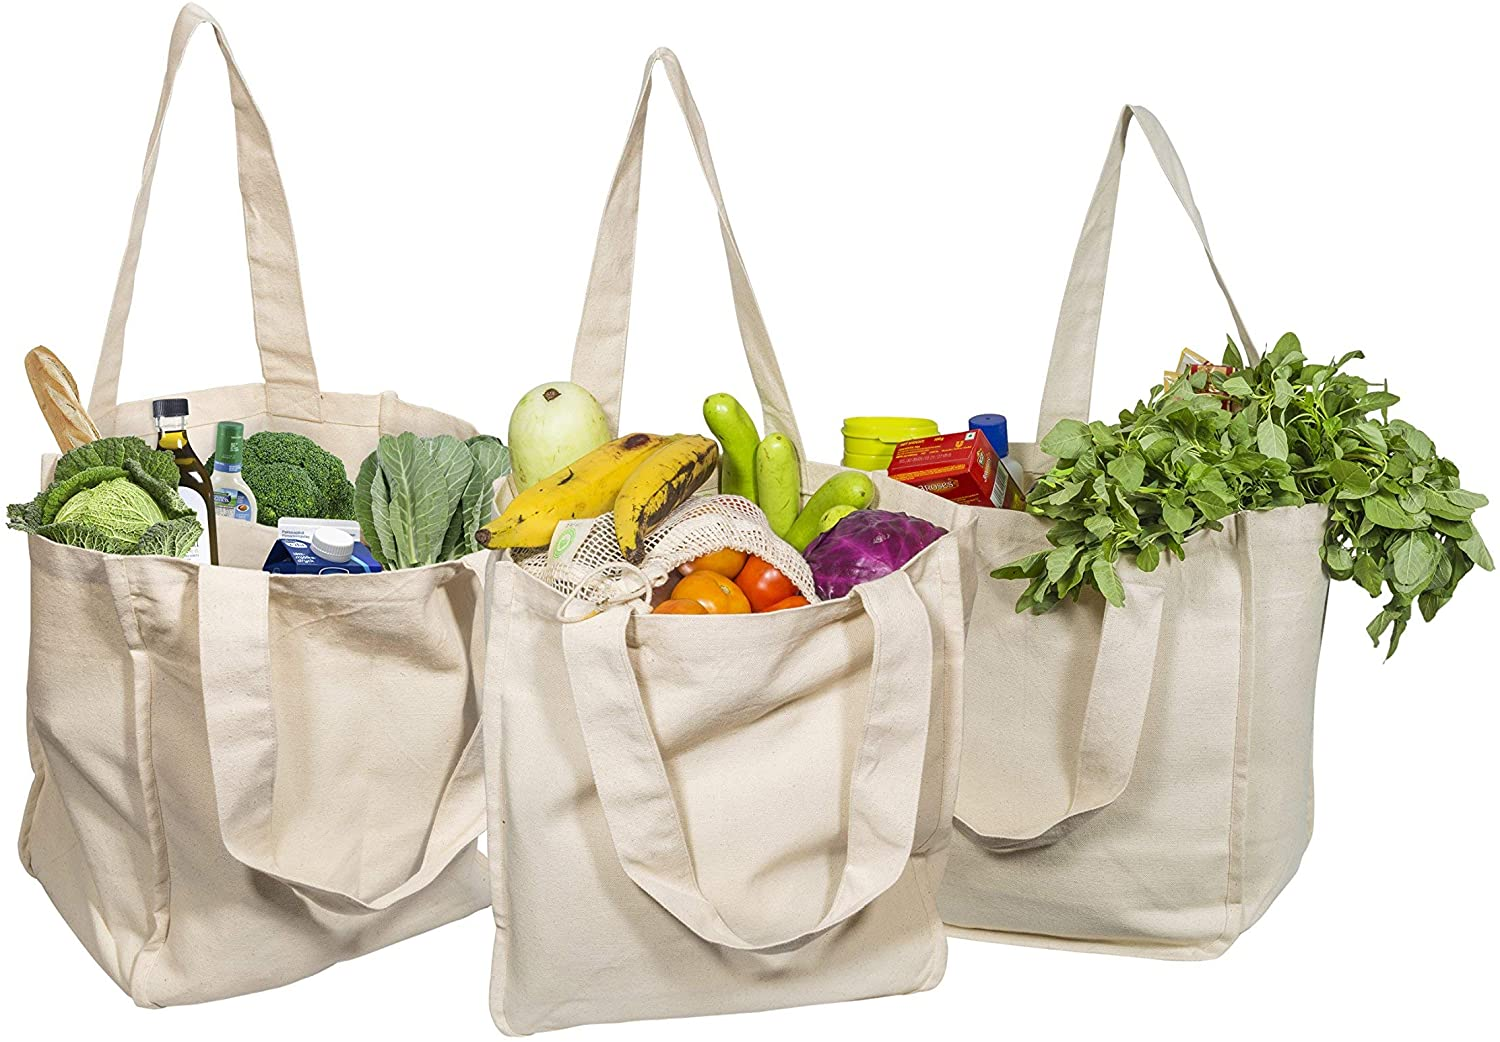 Amazon.com: Best Canvas Grocery Shopping Bags - Canvas Grocery Shopping Bags  with Handles - Cloth Grocery Tote Bags - Reusable Shopping Grocery Bags -  Organic Cotton Washable & Eco-friendly Bags (3 Bags):